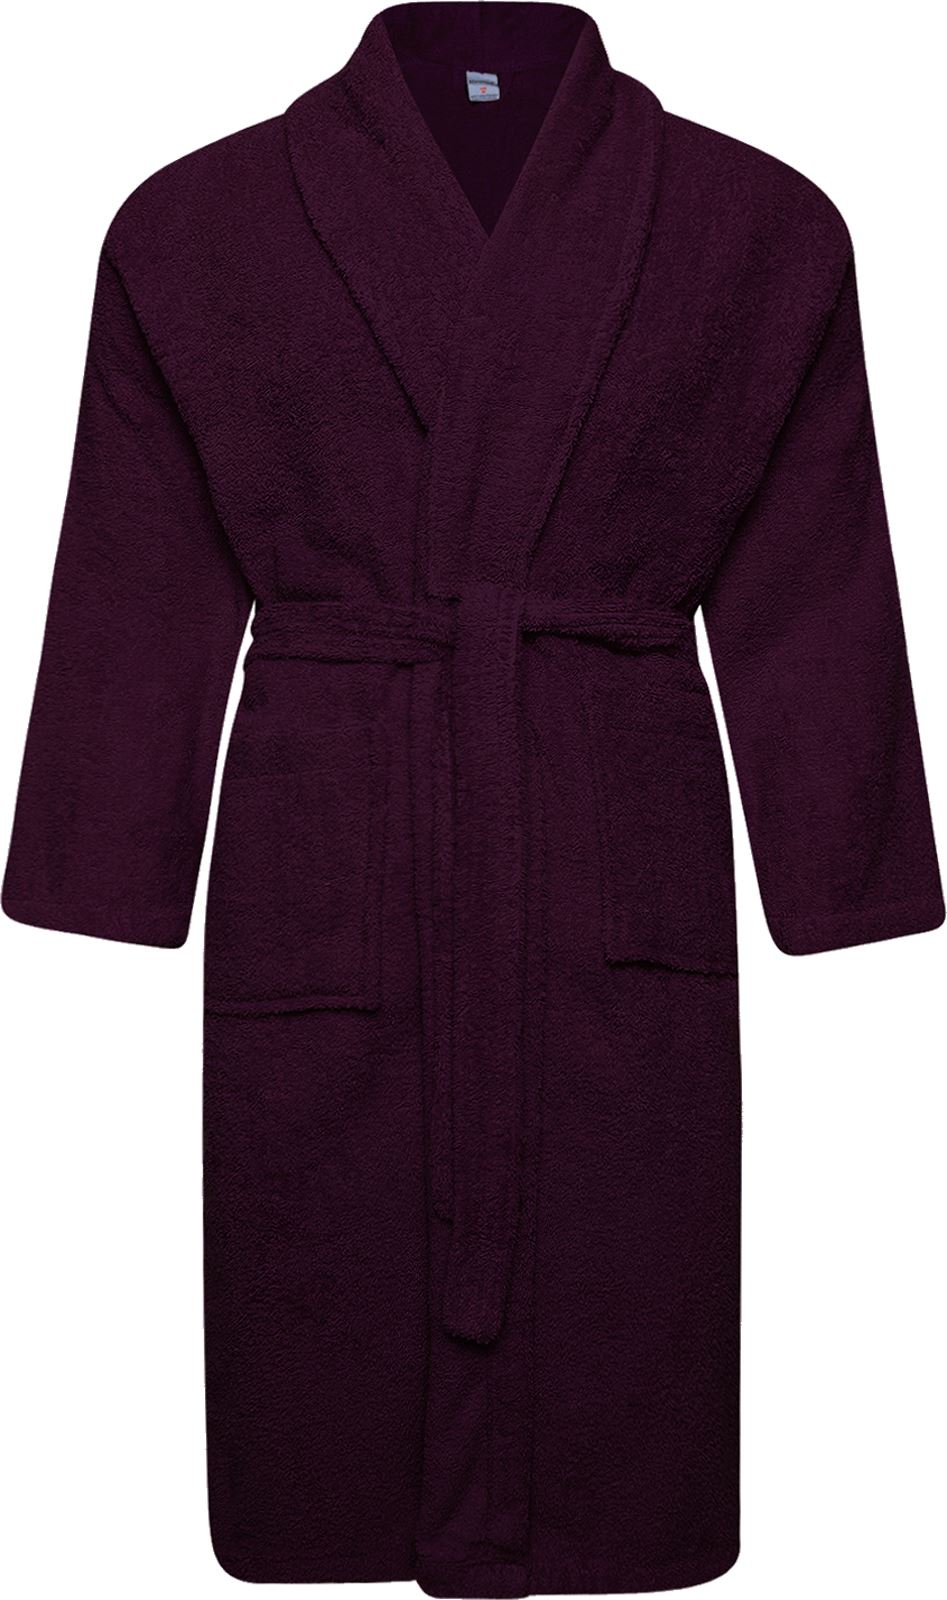 100% Cotton Terry Toweling Shawl Collar Purple Bathrobe Dressing ...